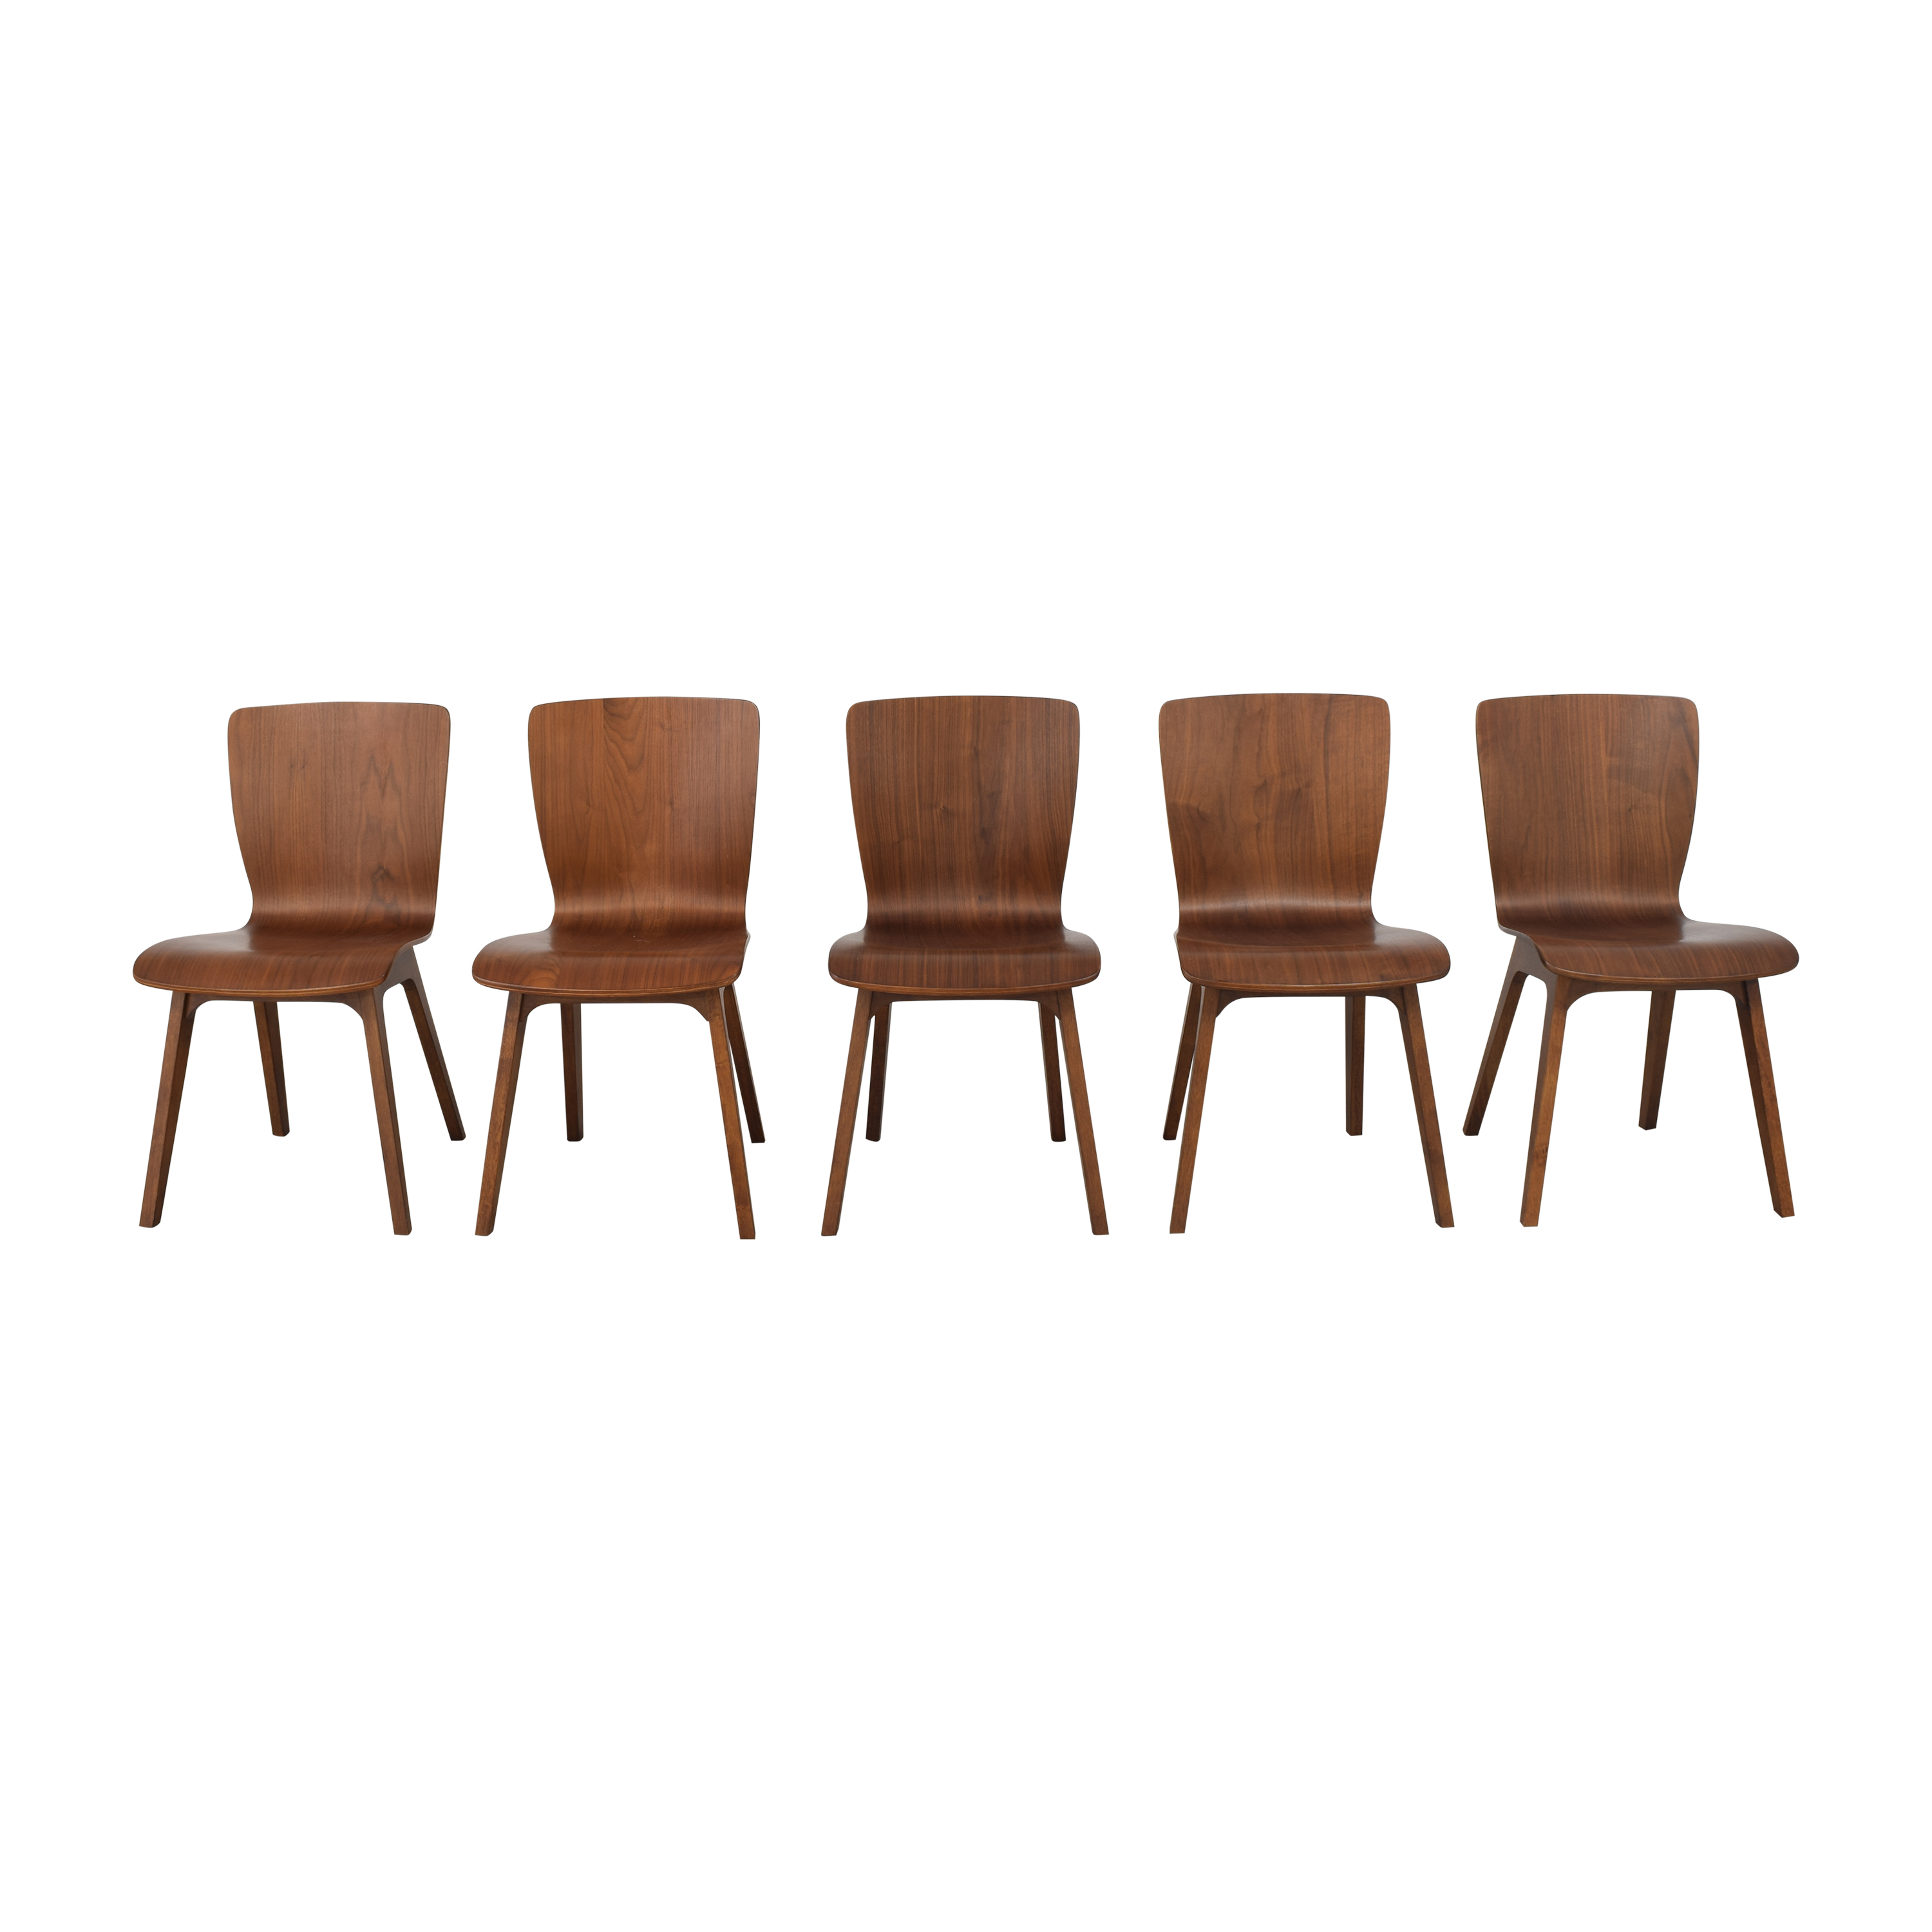 West Elm West Elm Crest Bentwood Dining Chairs discount